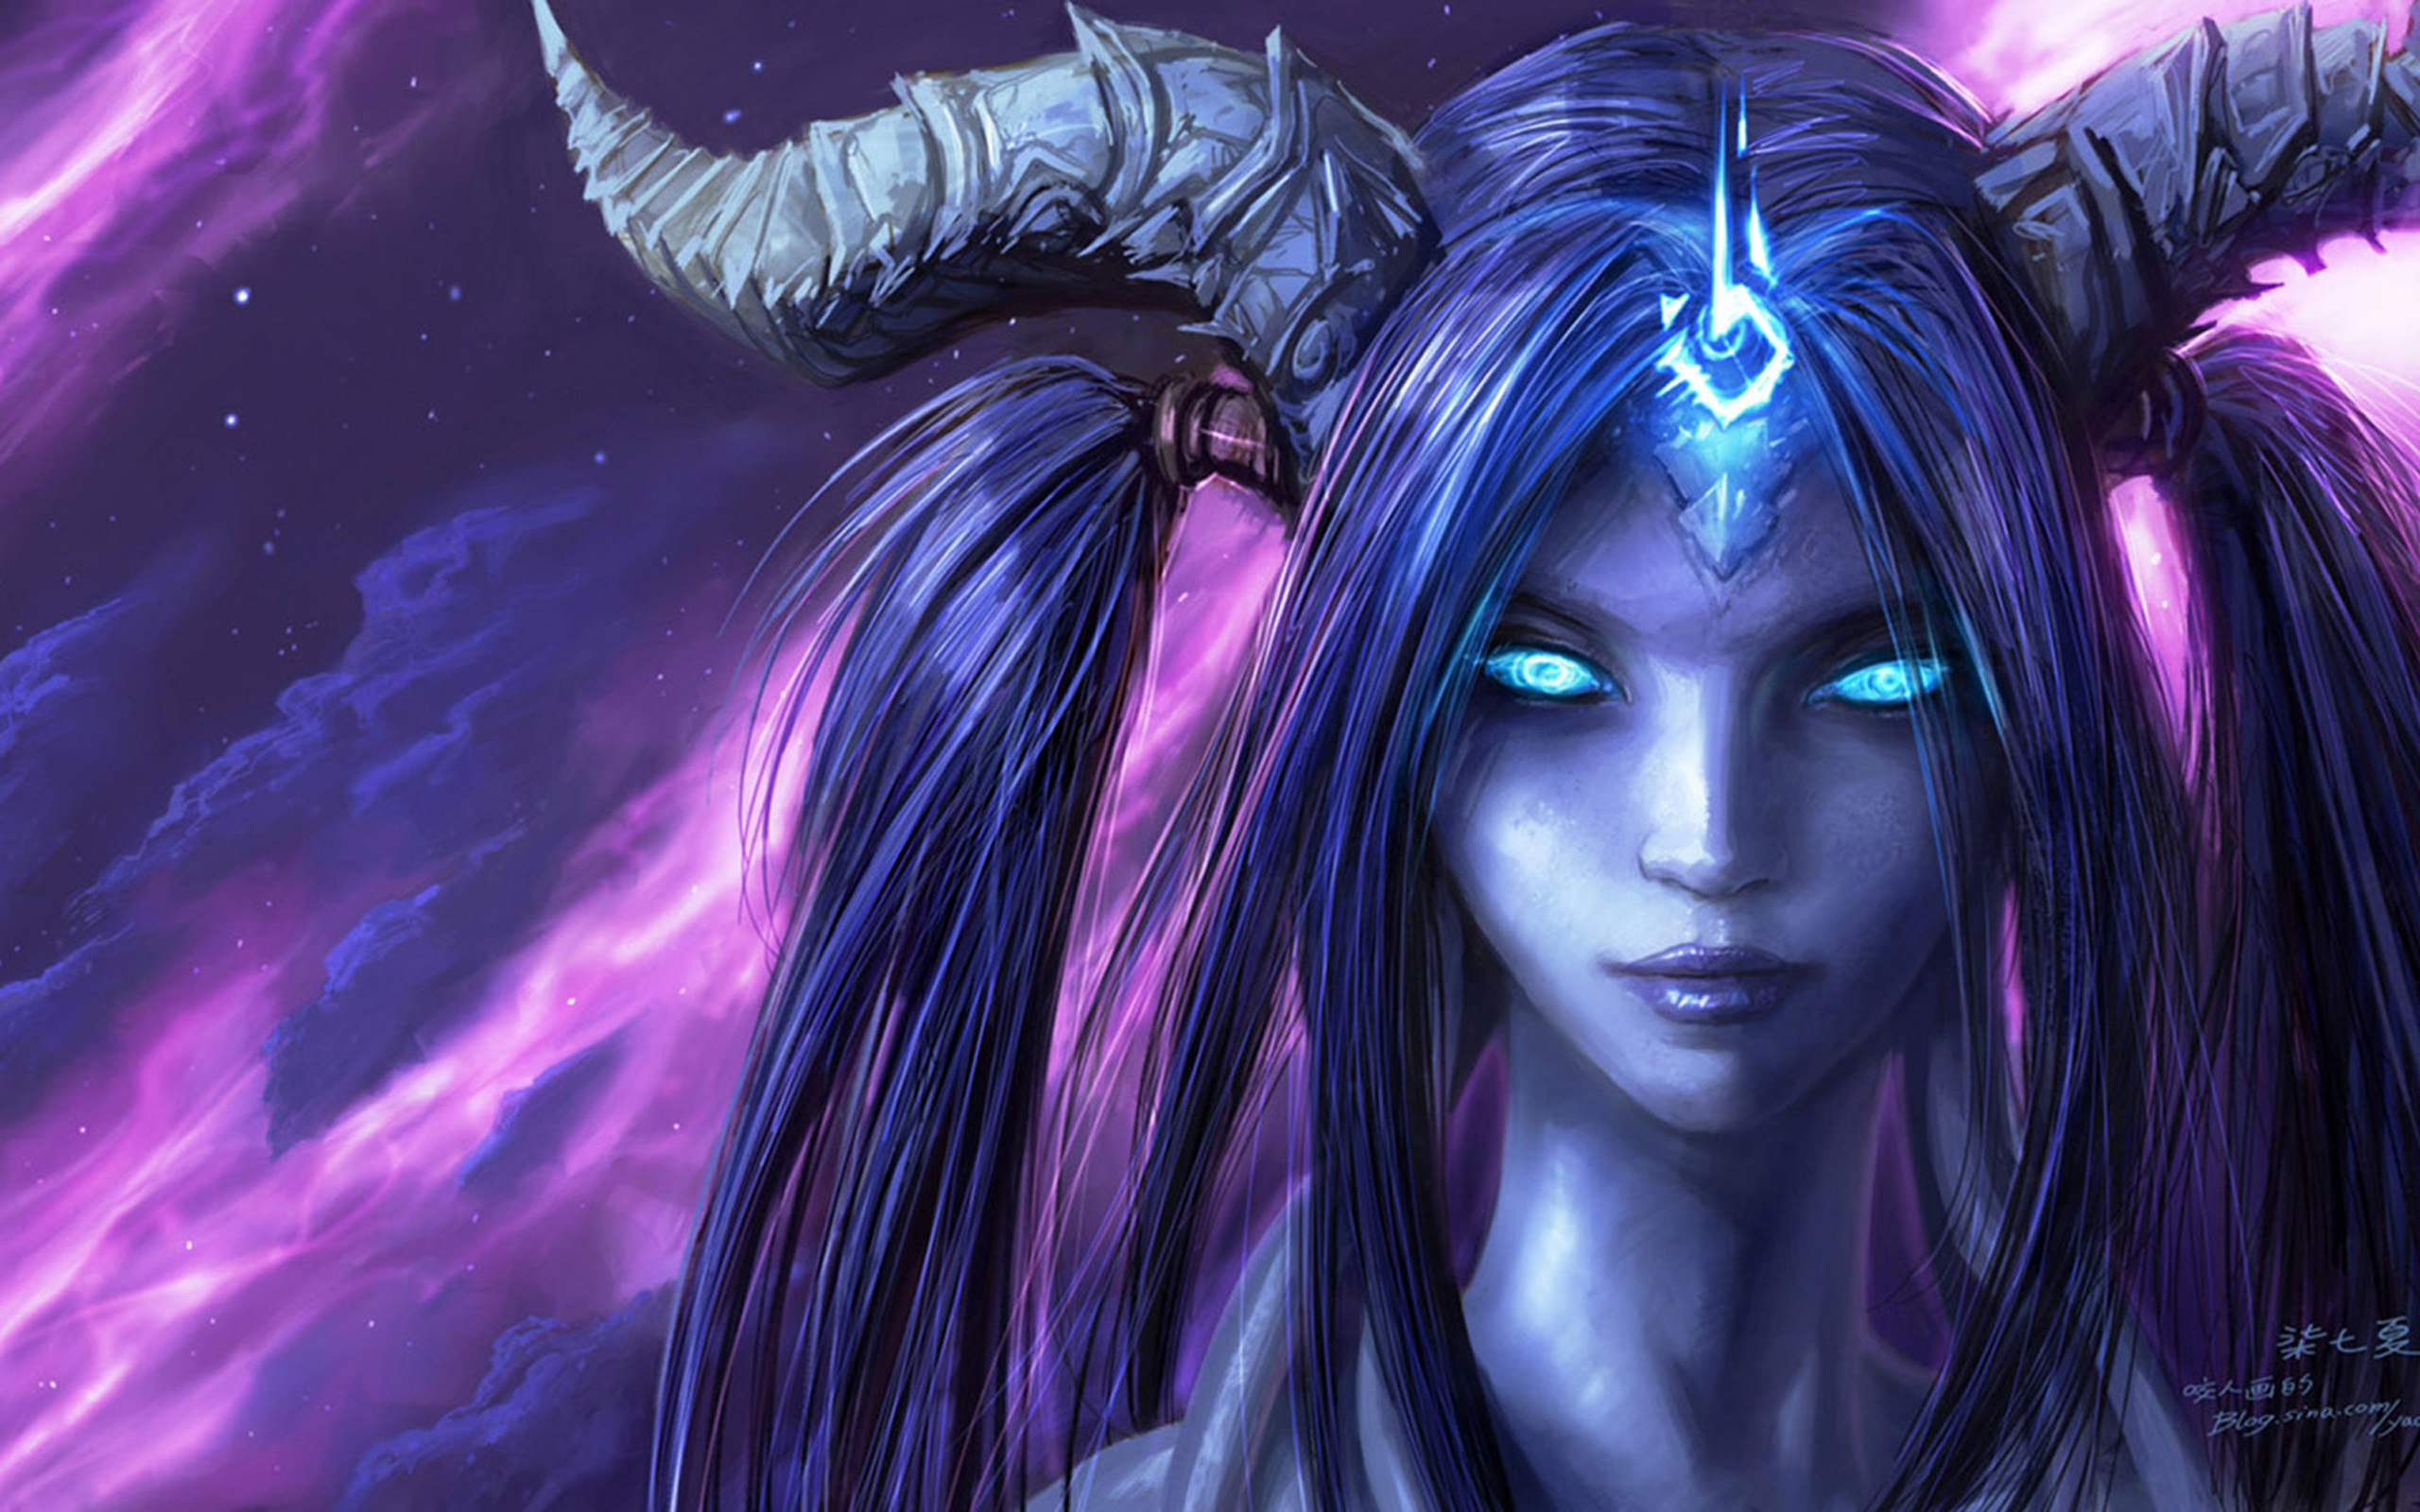 Beautiful Girl Wallpaper For Fb World Of Warcraft Beauty Wallpapers Hd 2560x1600